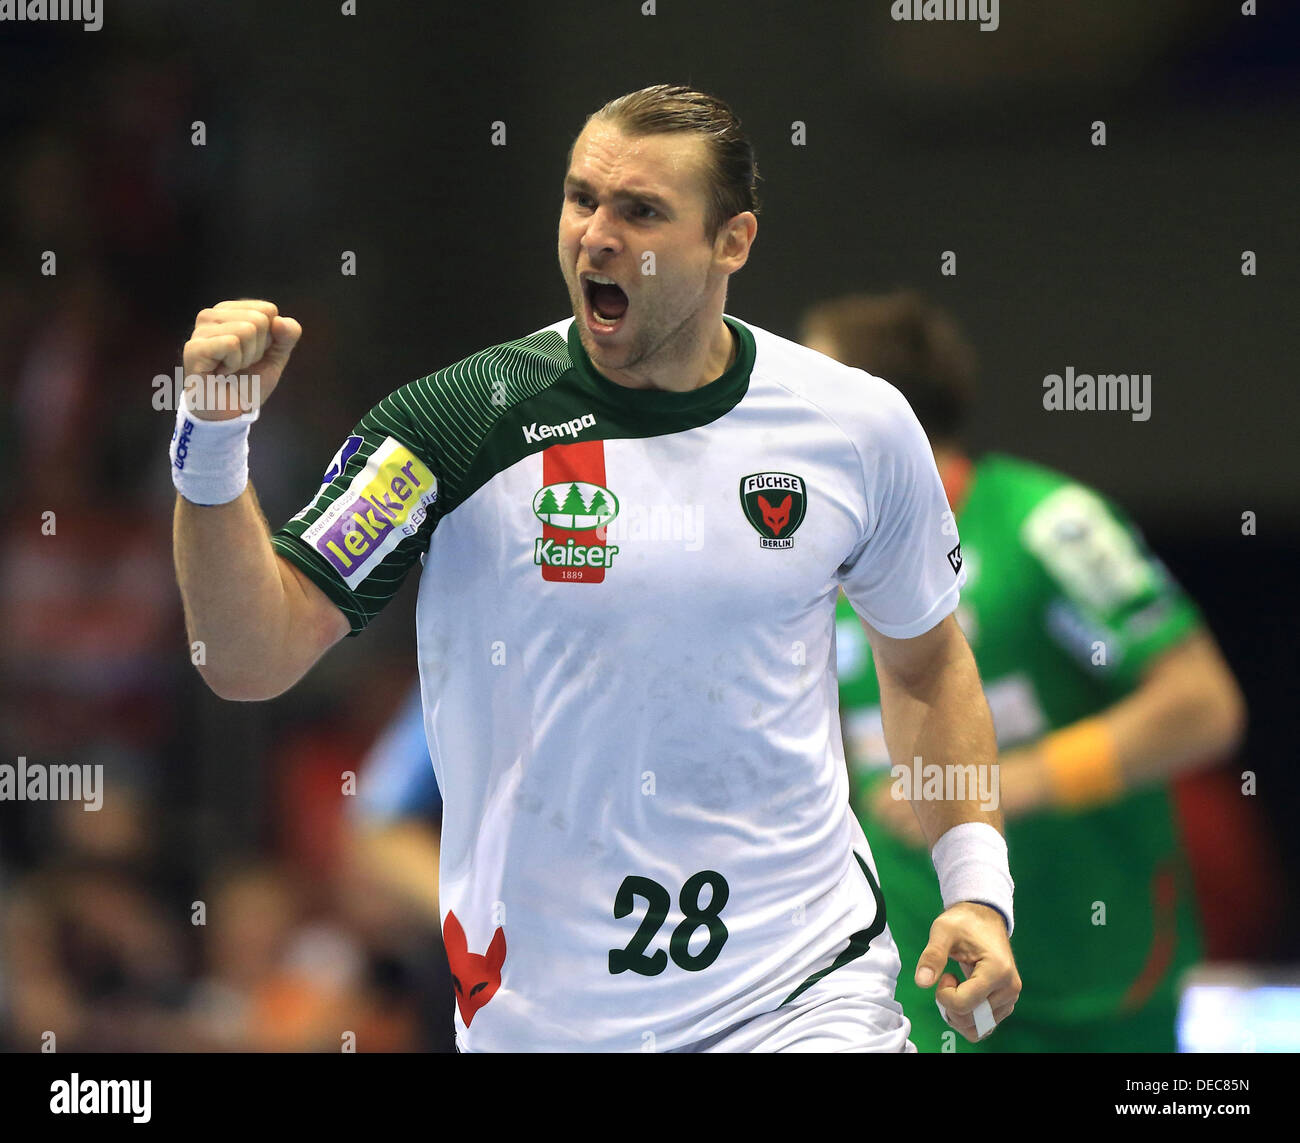 Berlin's Pavel Horak celebrates during the Bundesliga handball match between SC Magdeburg and Fuechse Berlin at Getec-Arena in Magdeburg, Germany, 15 September 2013. Photo:JENS WOLF - Stock Image